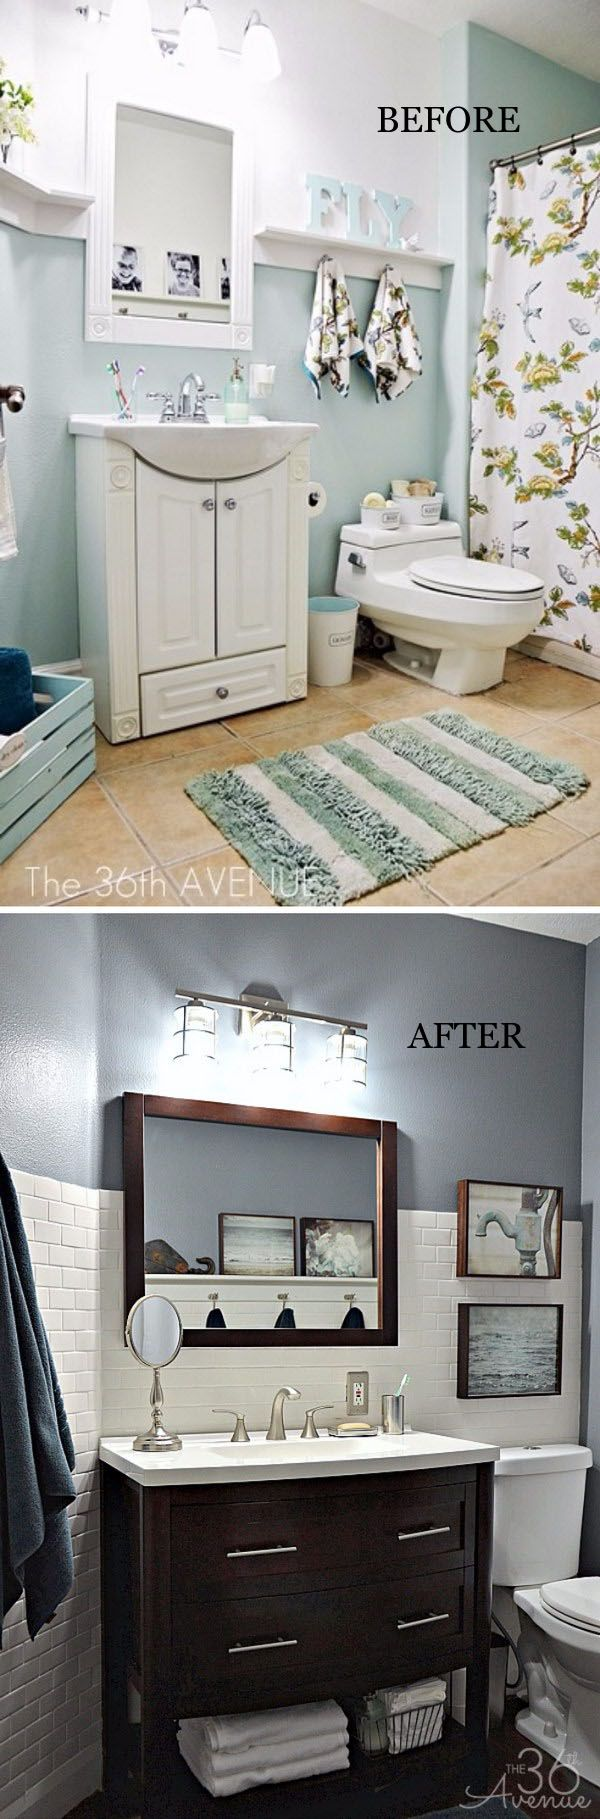 Images Photos The Immensely Cool Diy Bathroom Remodel Ways You Cannot Find On The Internet